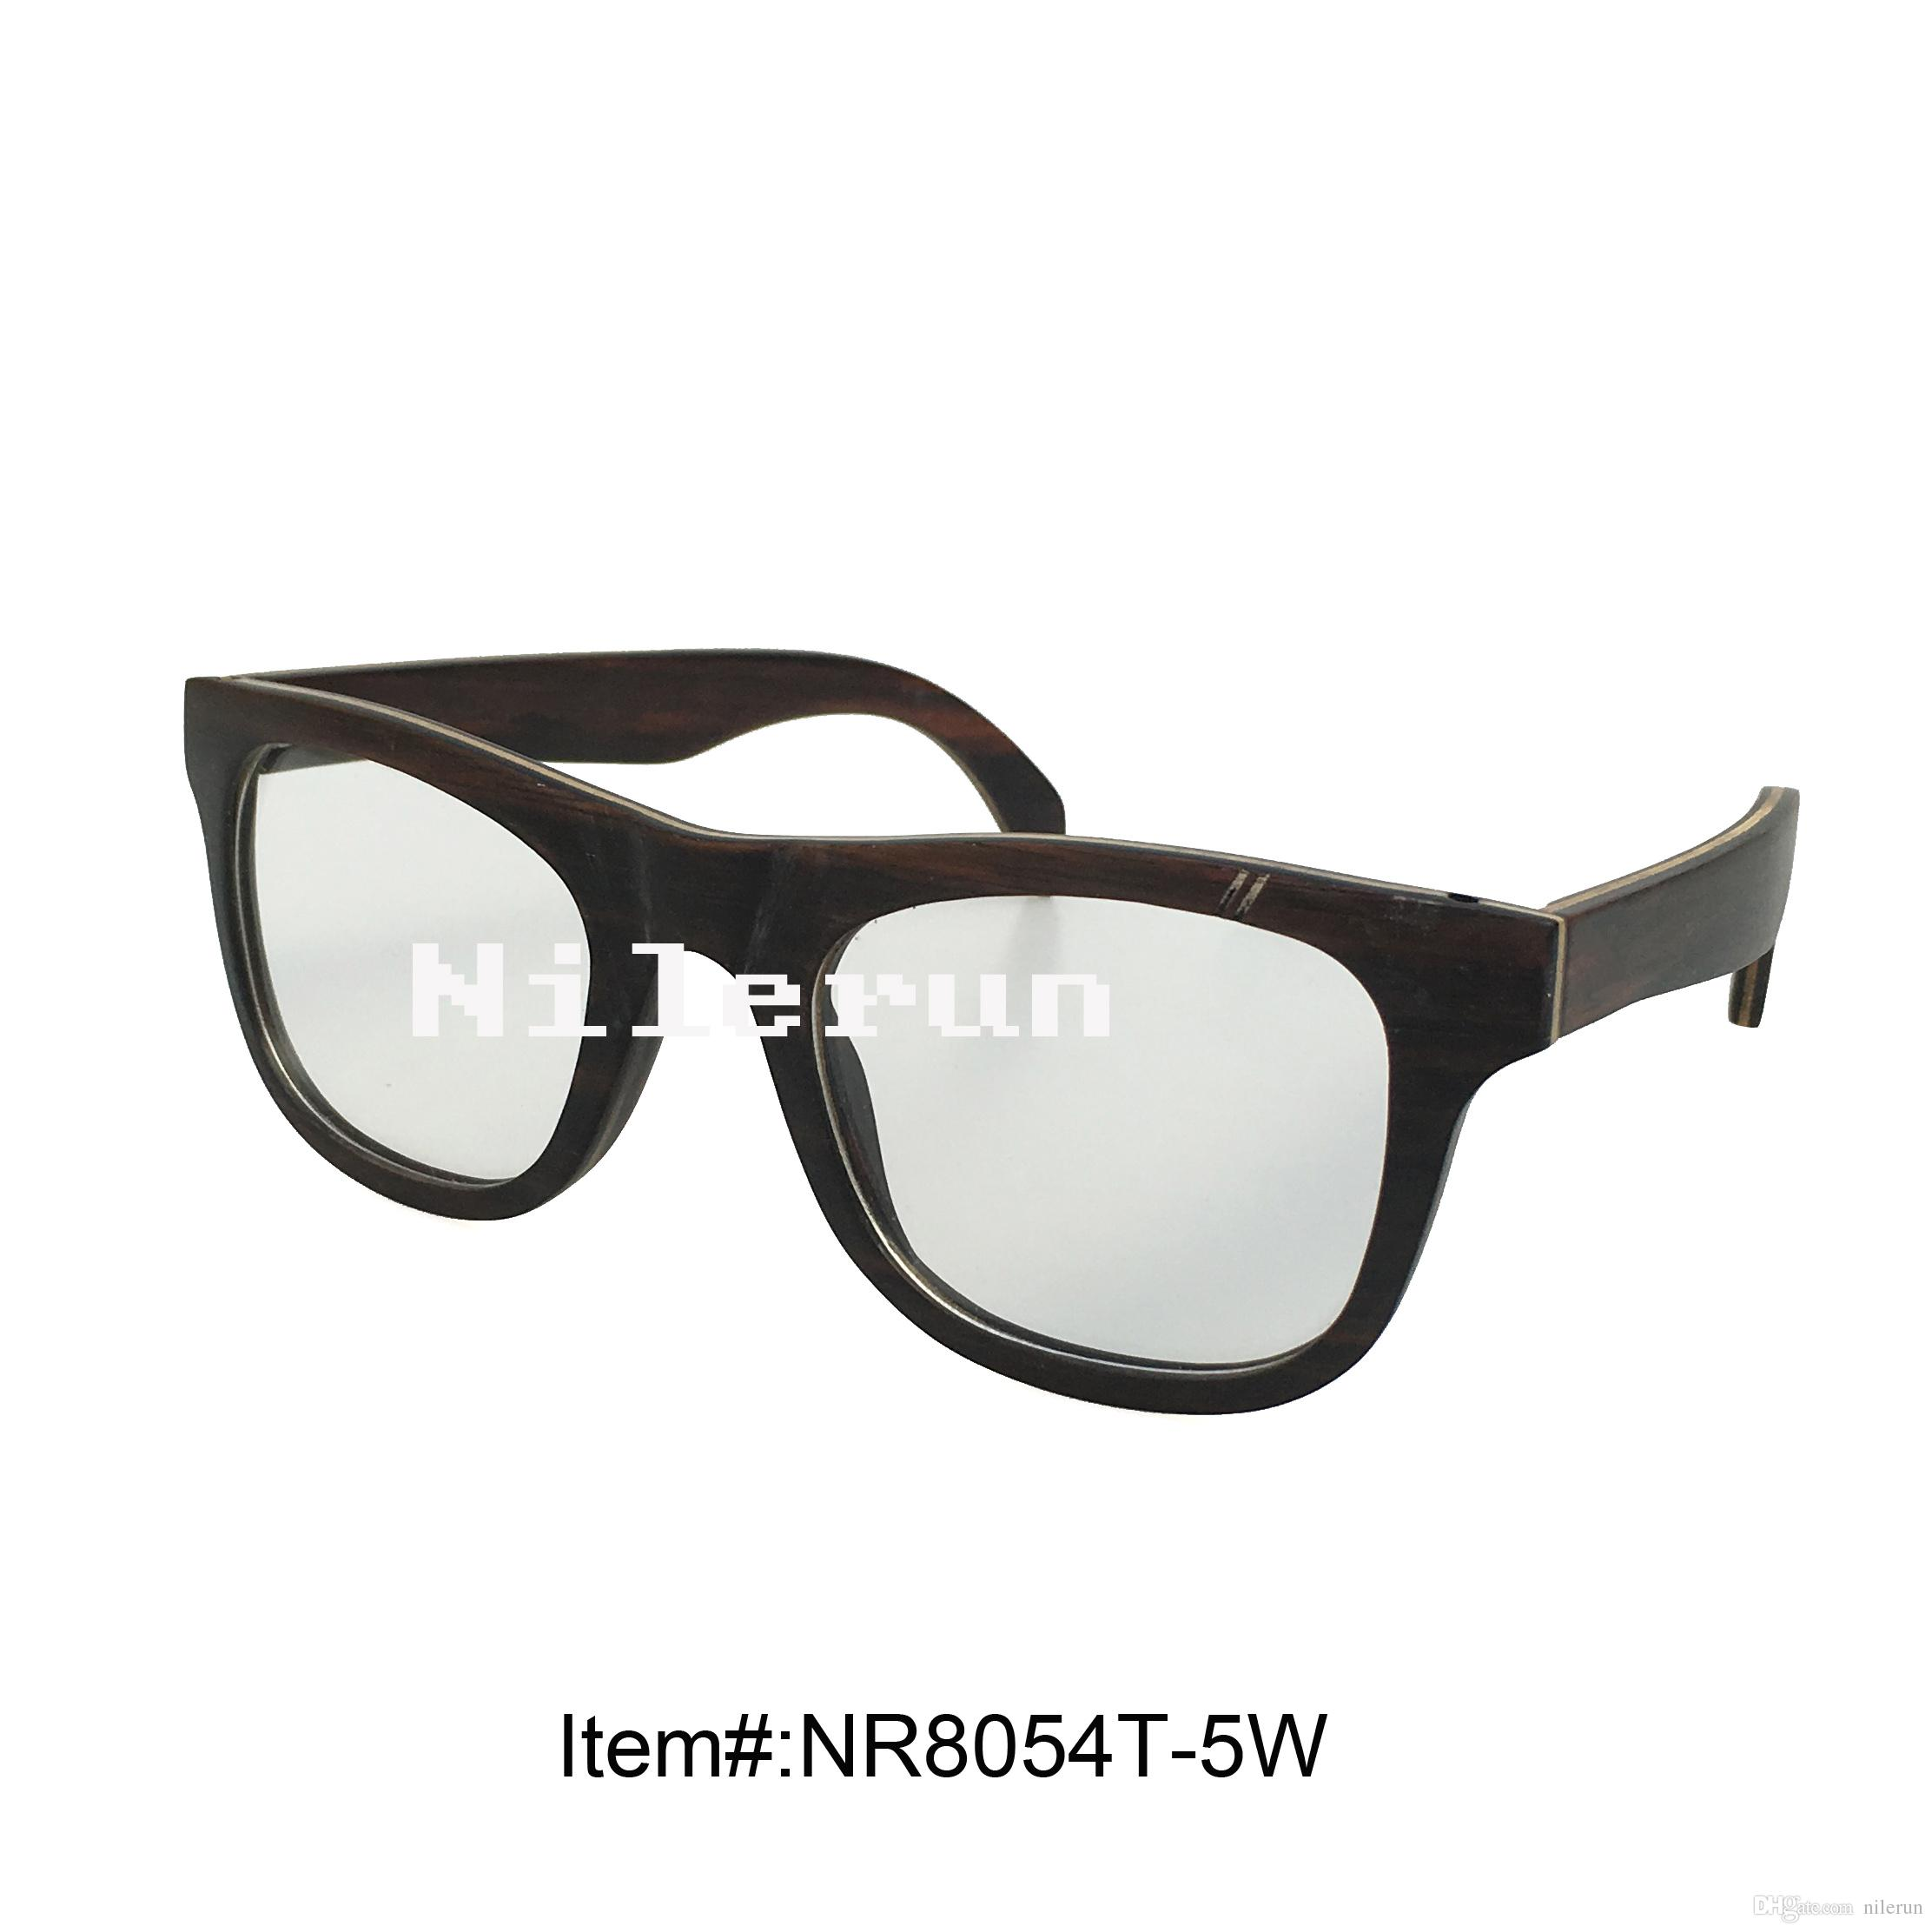 01582a8a7f Vintage Antique Black Wood Frame Optical Eyeglasses Vintage Wooden  Eyeglasses Vintage Wooden Eyeglasses Antique Black Wood Eyeglasses Online  with ...